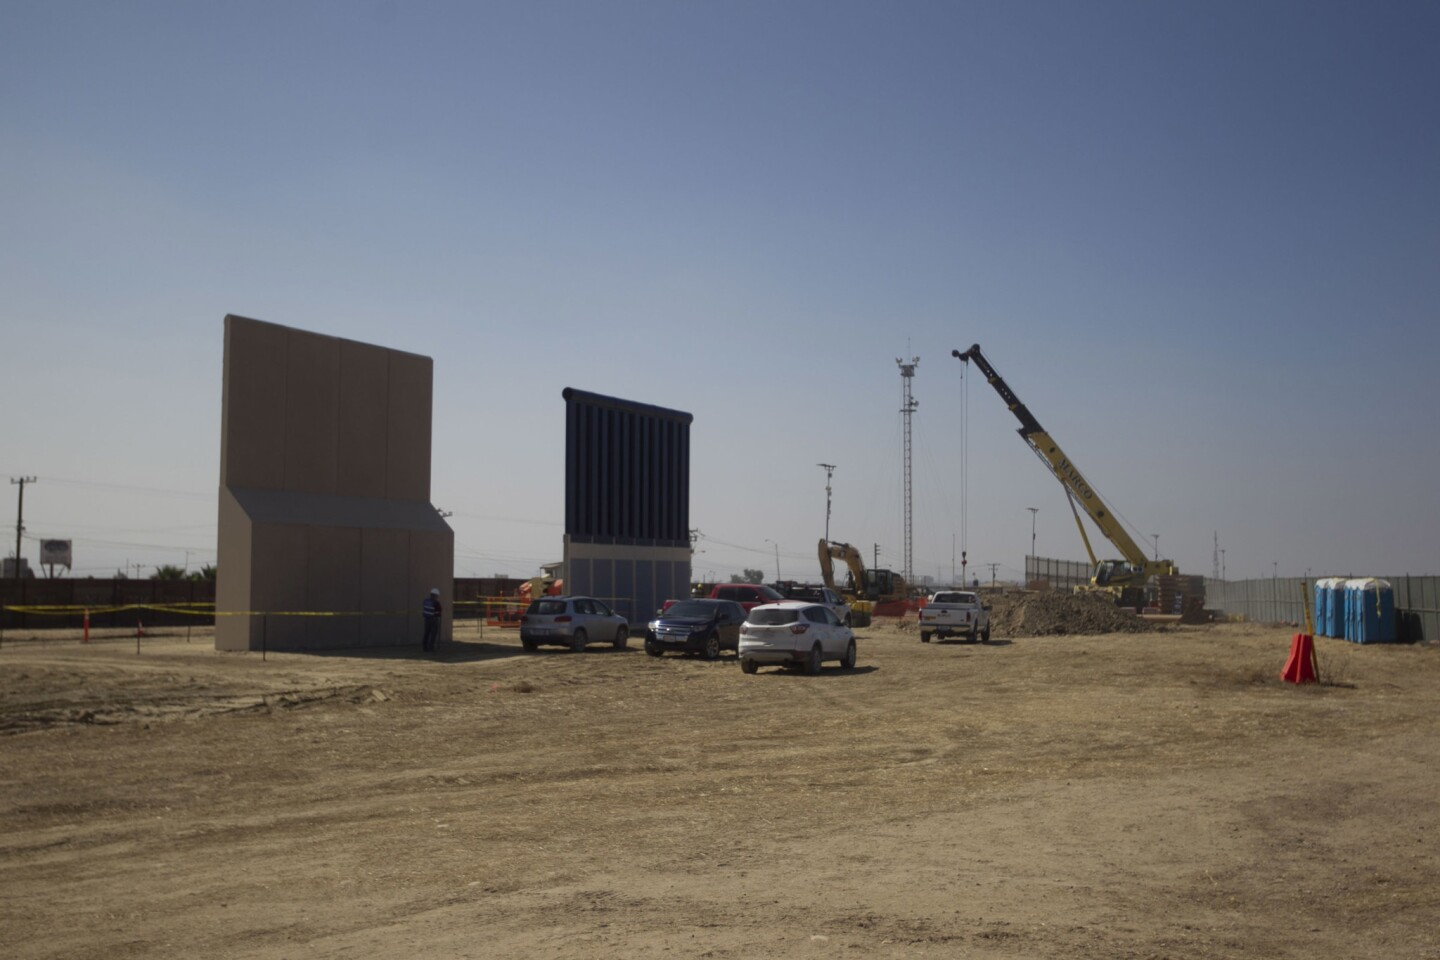 Border wall prototypes October 13